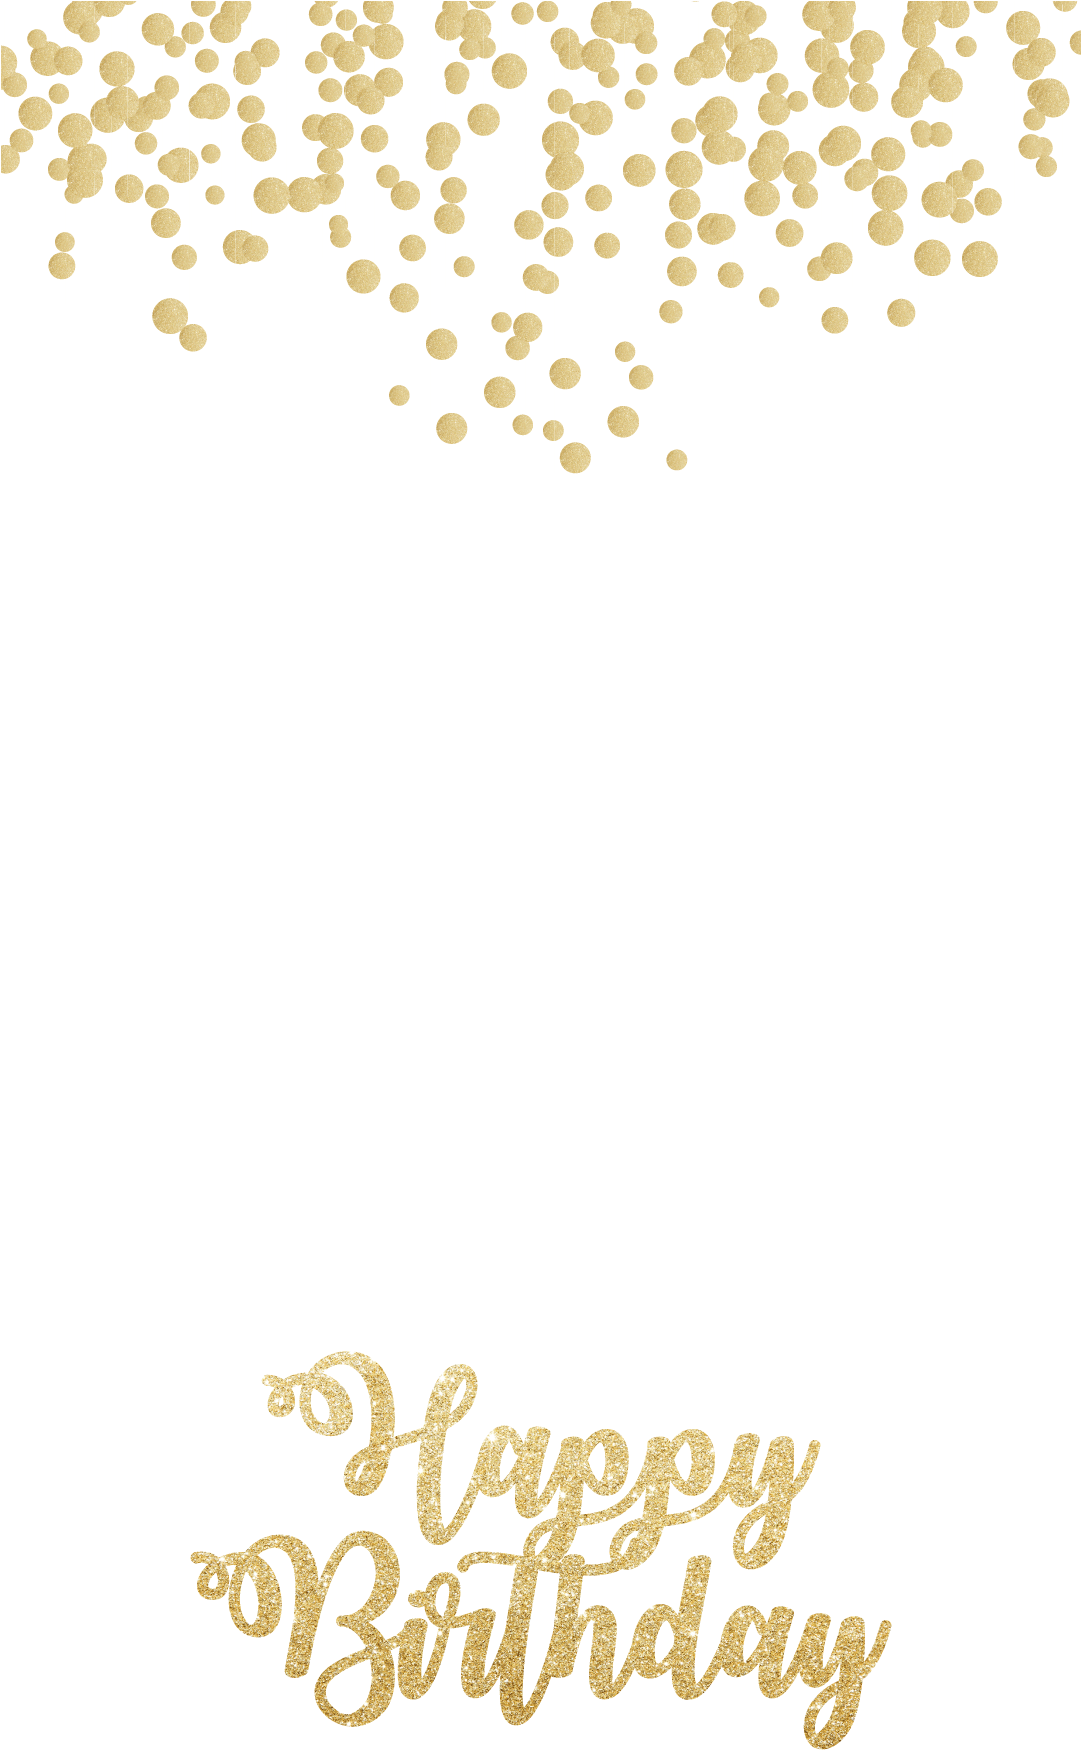 Glitter background png. Download gold sparkles snapchat